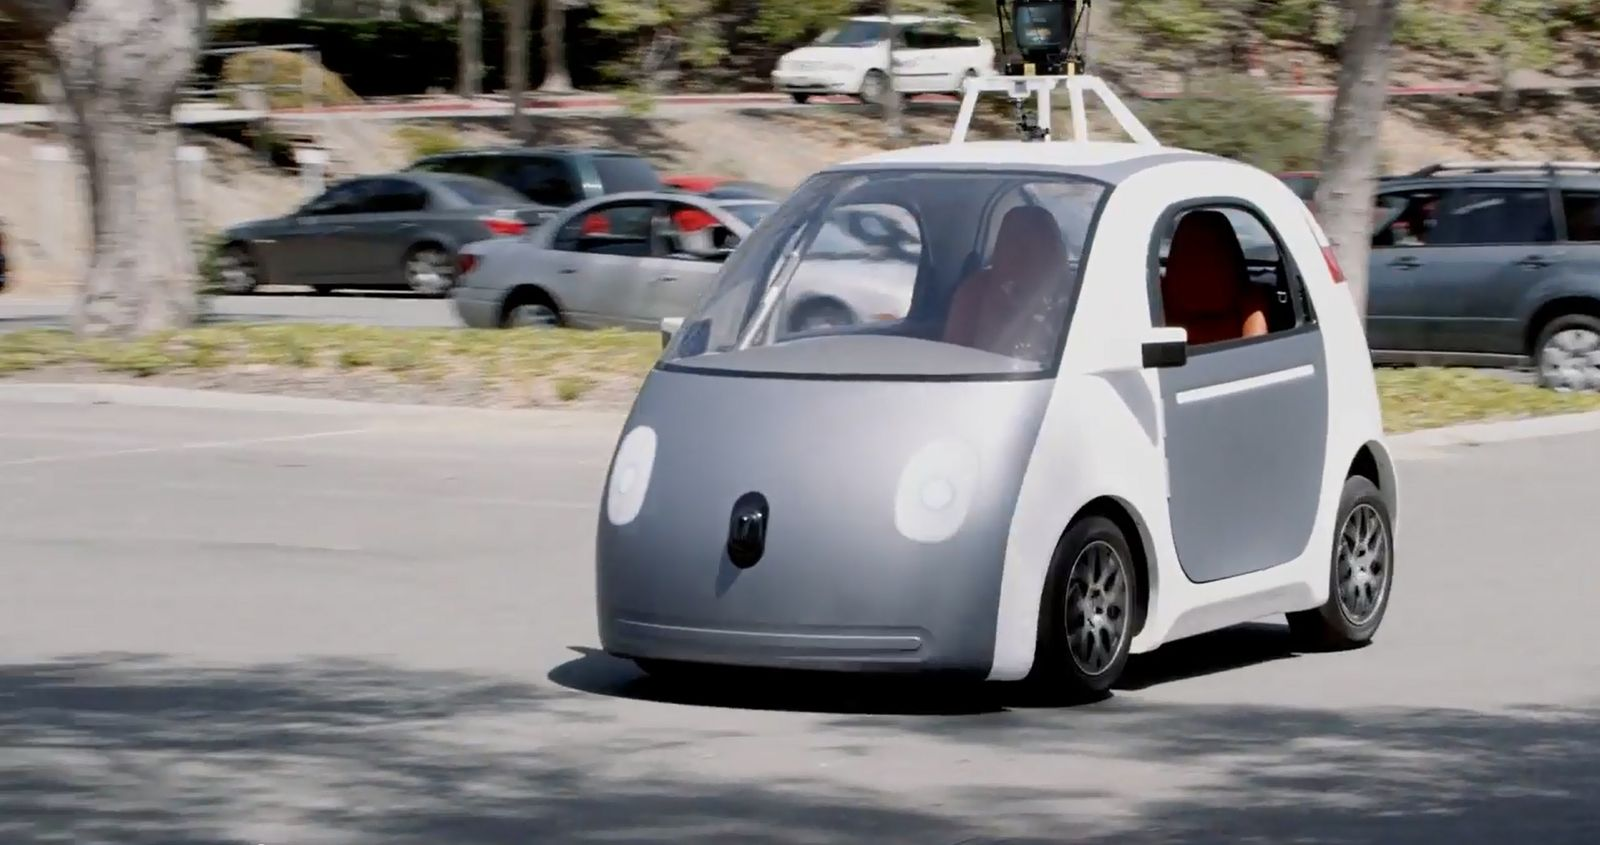 SCREENSHOT Youtube / Google Driverless Car